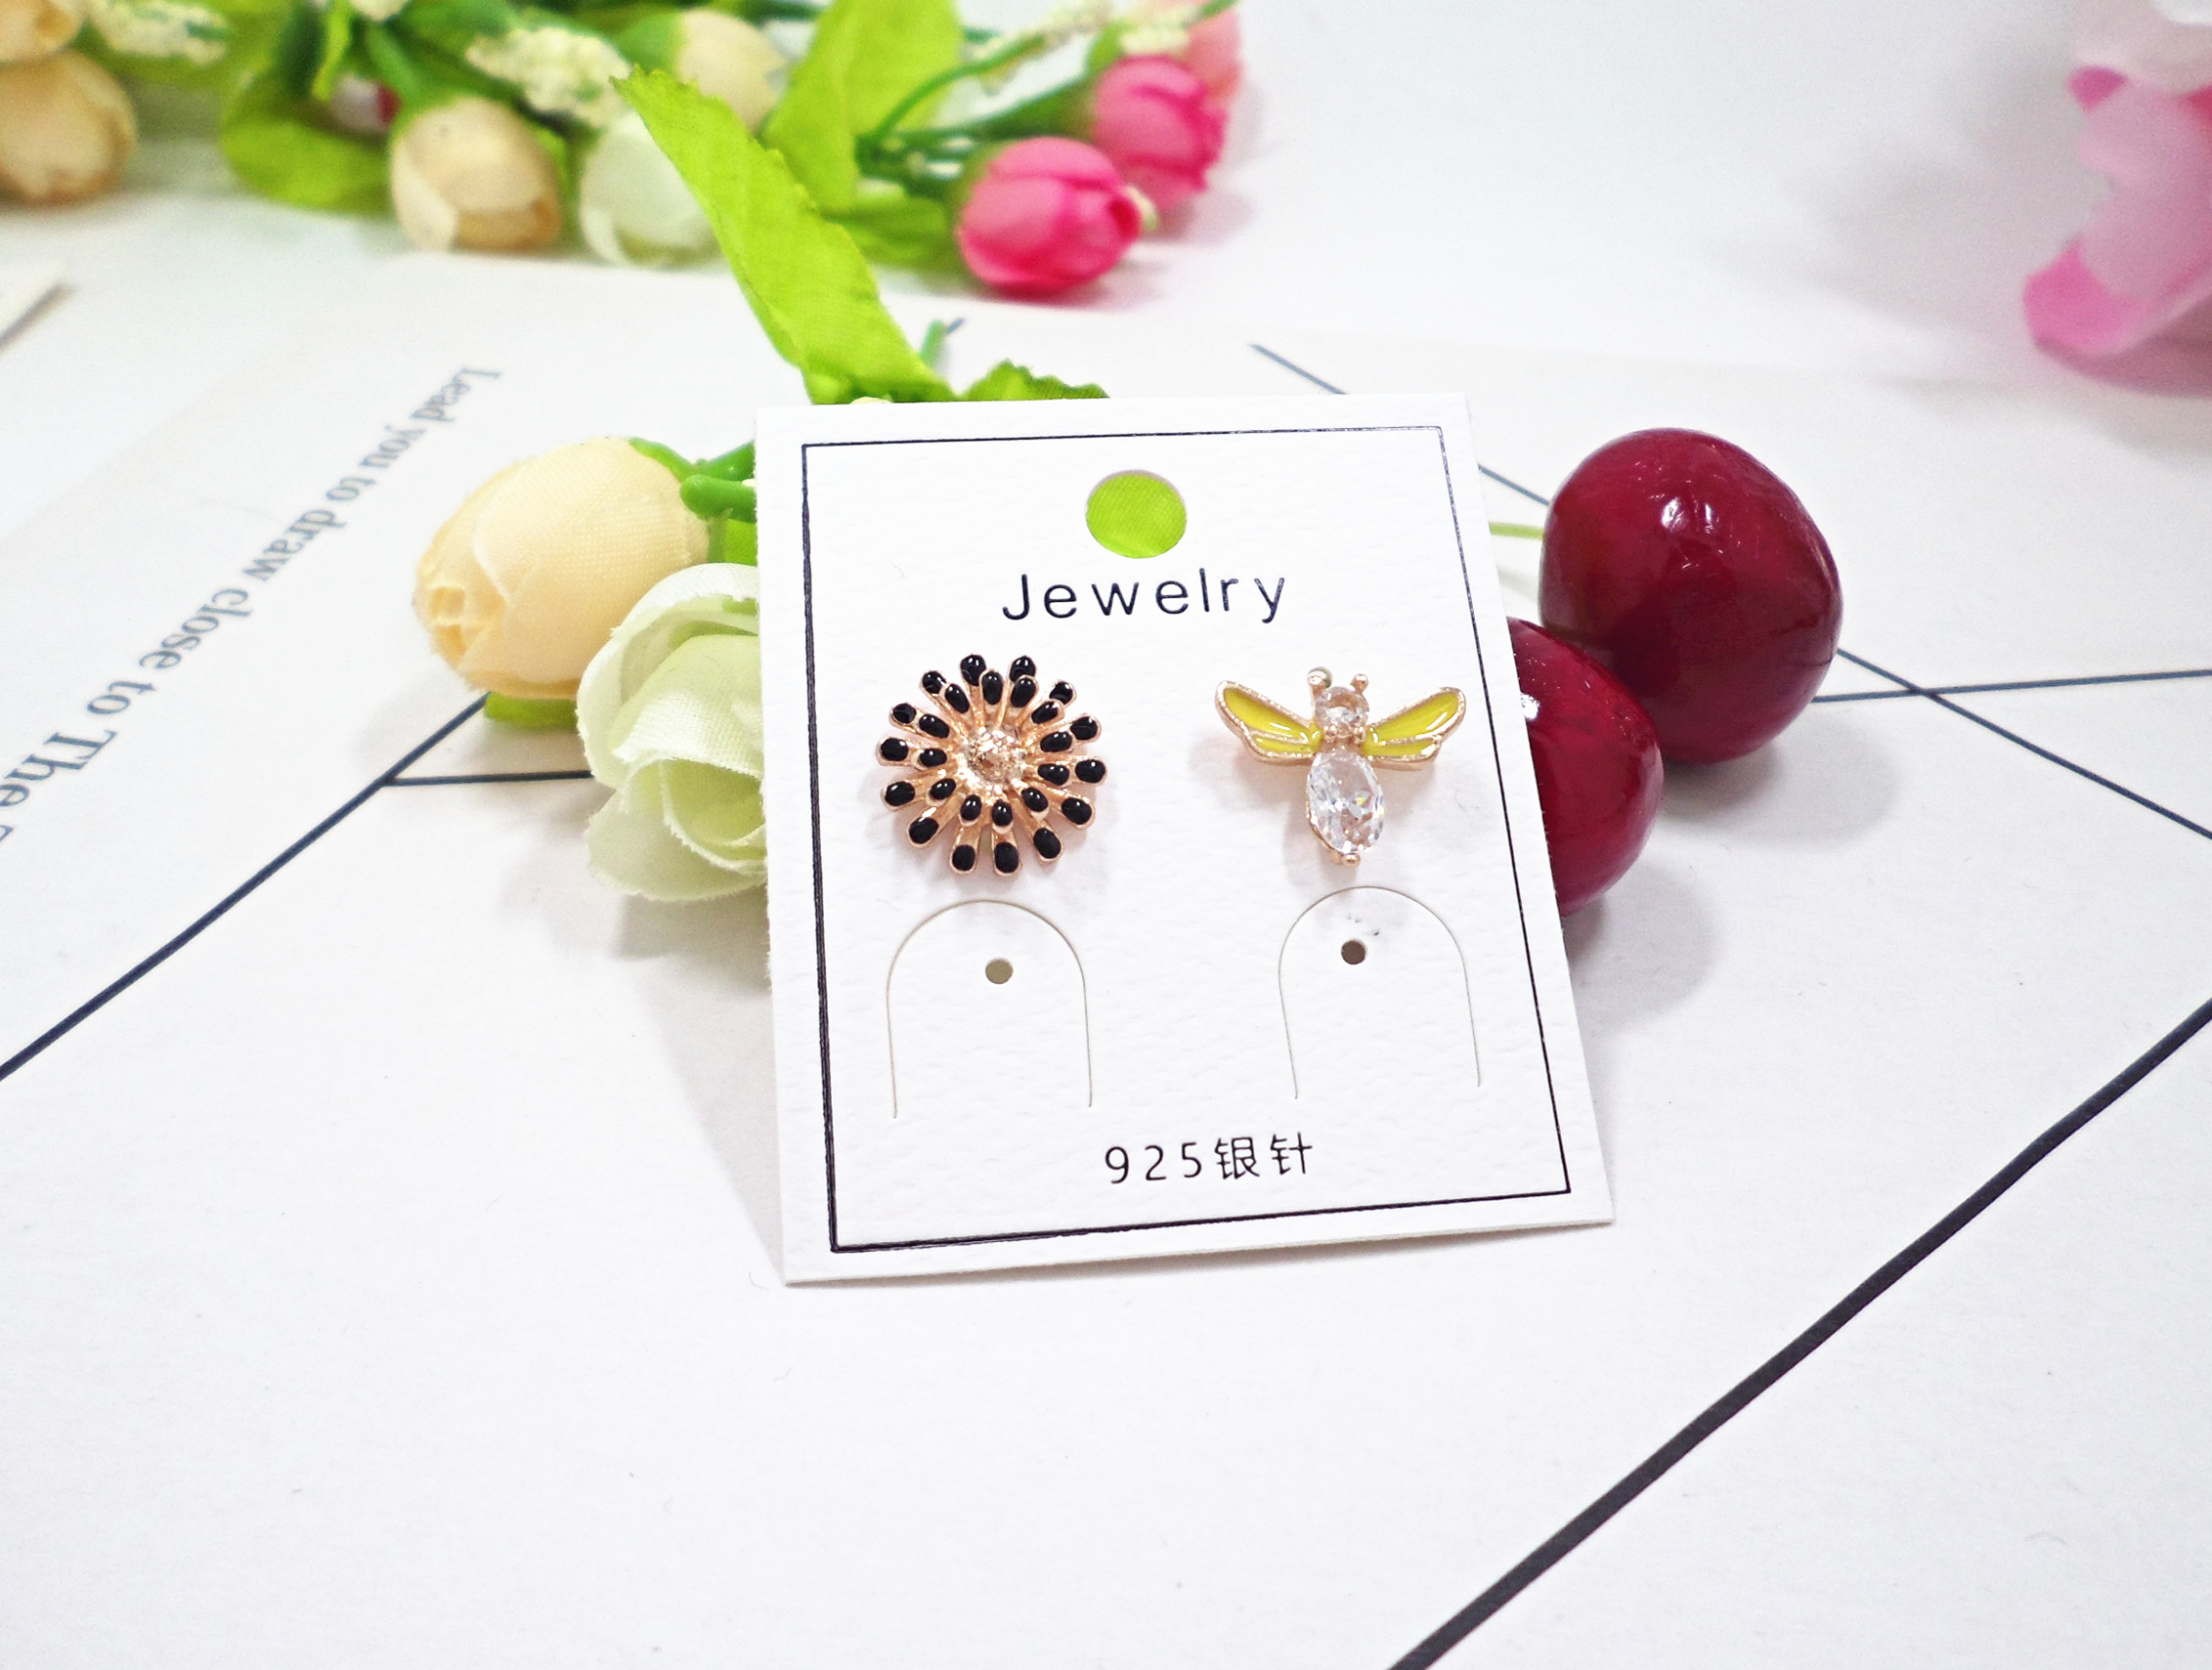 Wholesale Lot Zinc Alloy Metal Cute Bee Sunflower Shape Enamel Charms Fashion Earring Bracelet Making Pendants VGE185 4